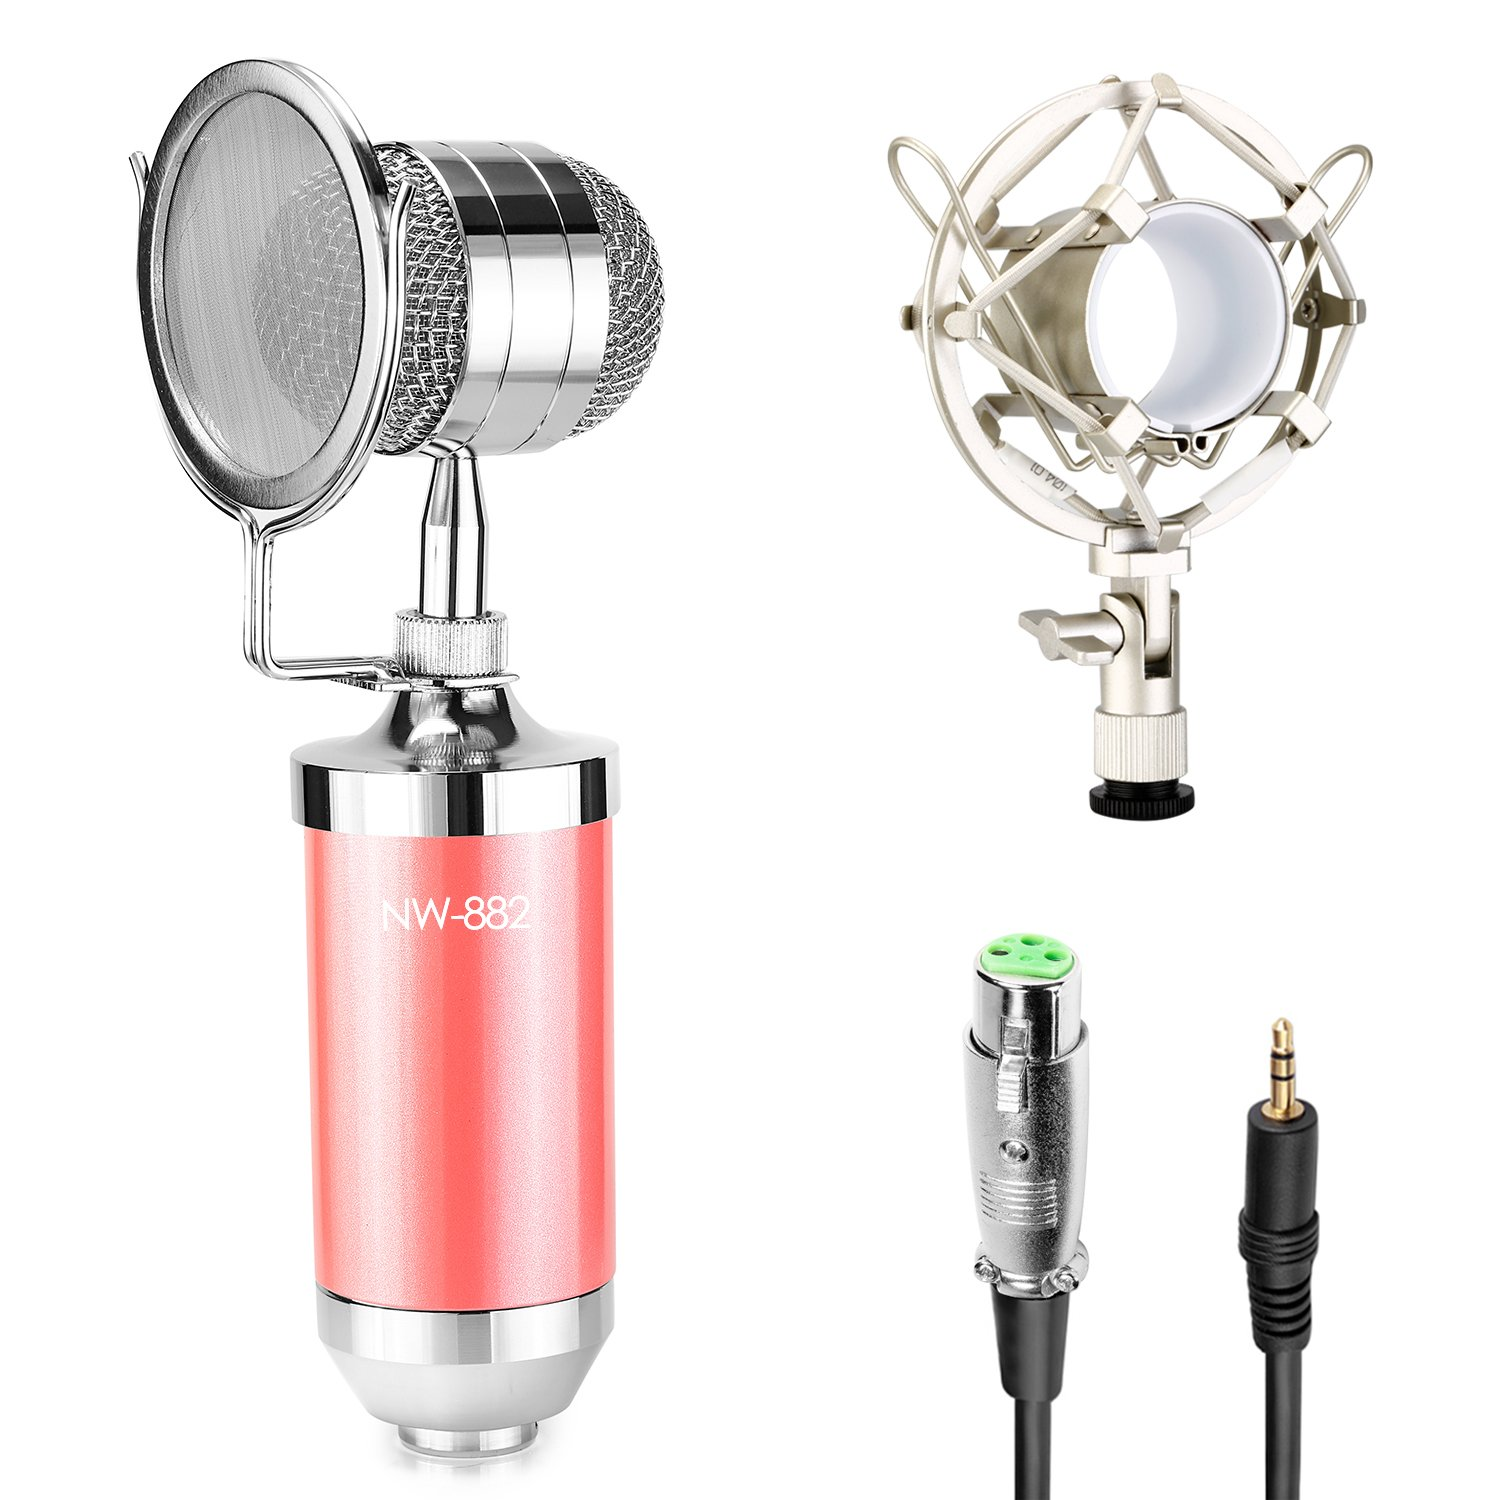 Neewer Cardioid Condenser Broadcasting & Recording Microphone Kit includes: (1)Pink Condenser Microphone with Build-in Pop Filter+(1)Shock Mount +(1)3.5mm Male to XLR Female Cable 10087297@@##1